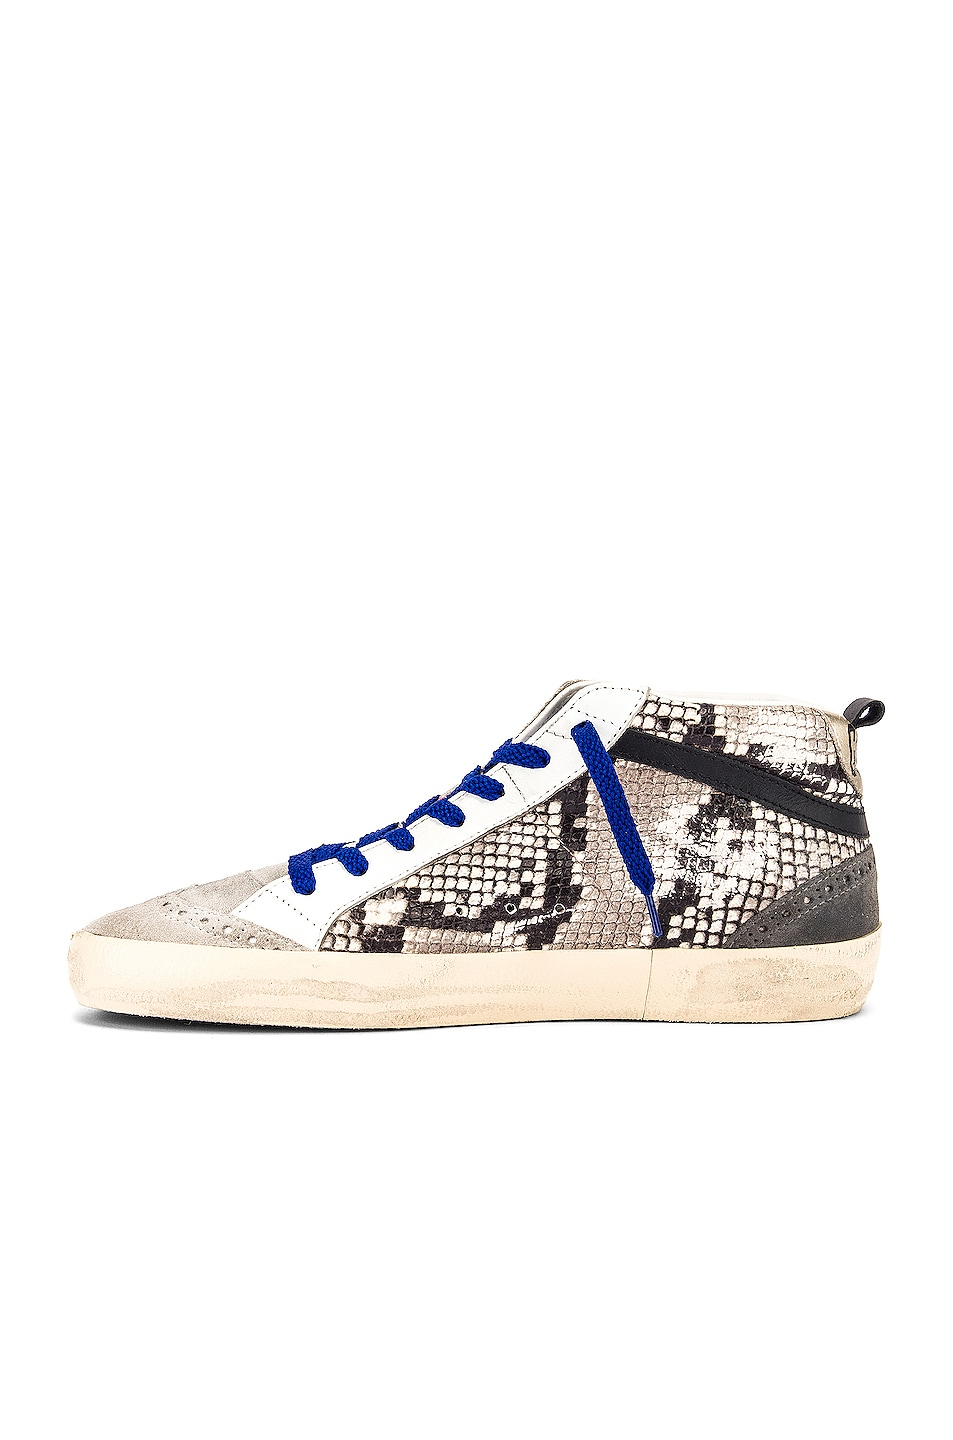 Image 5 of Golden Goose Mid Star Sneaker in Rock Snake & Fuchsia